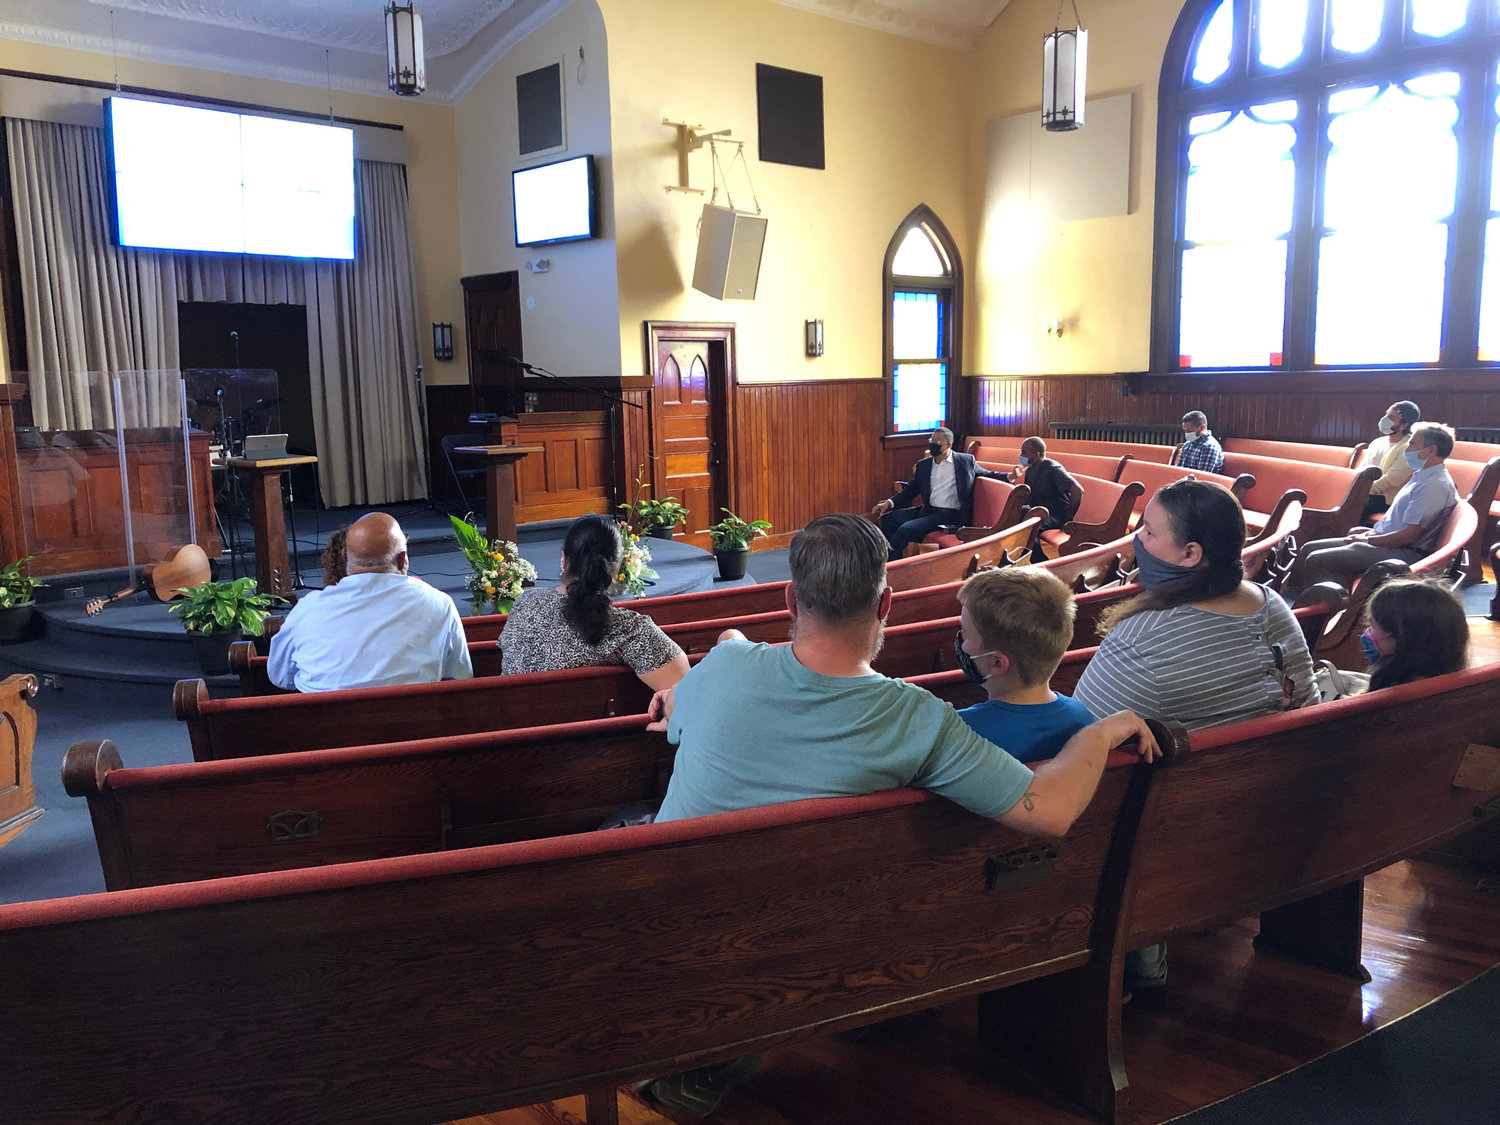 On Sept. 13, almost two-dozen people gathered for Edge City Church's first in-person launch service in Lynbrook.